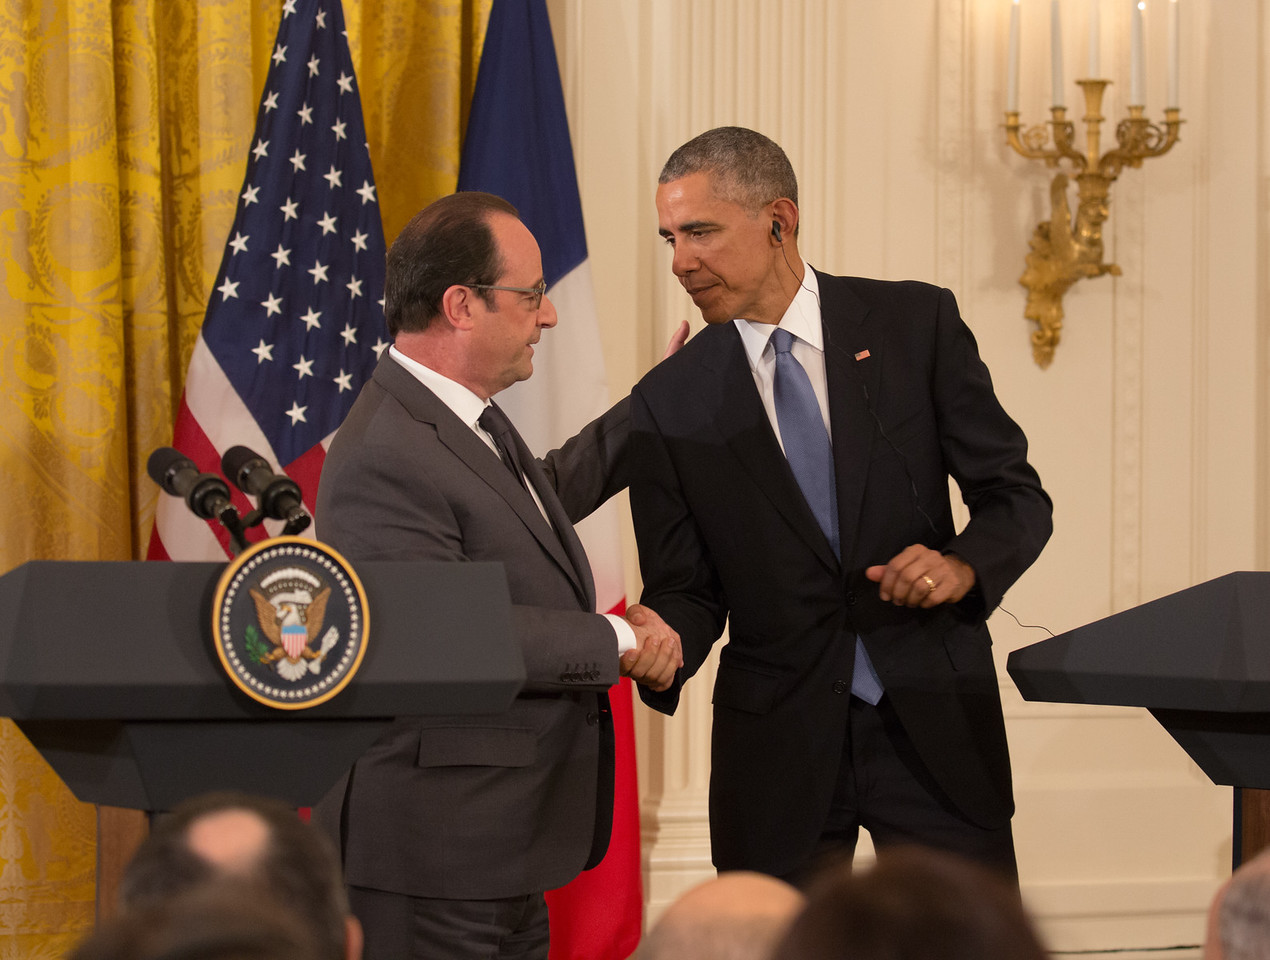 French President François Hollande and U.S. President Barack Obama held a joint press conference at the White House in Washington D.C.  on Tuesday, November 24, 2015. The governments of France and the United States agreed to increase military operations against the Islamic State in Syria and Iraq and share intelligence on domestic threats following the worst terrorist attacks to hit France since World War II.